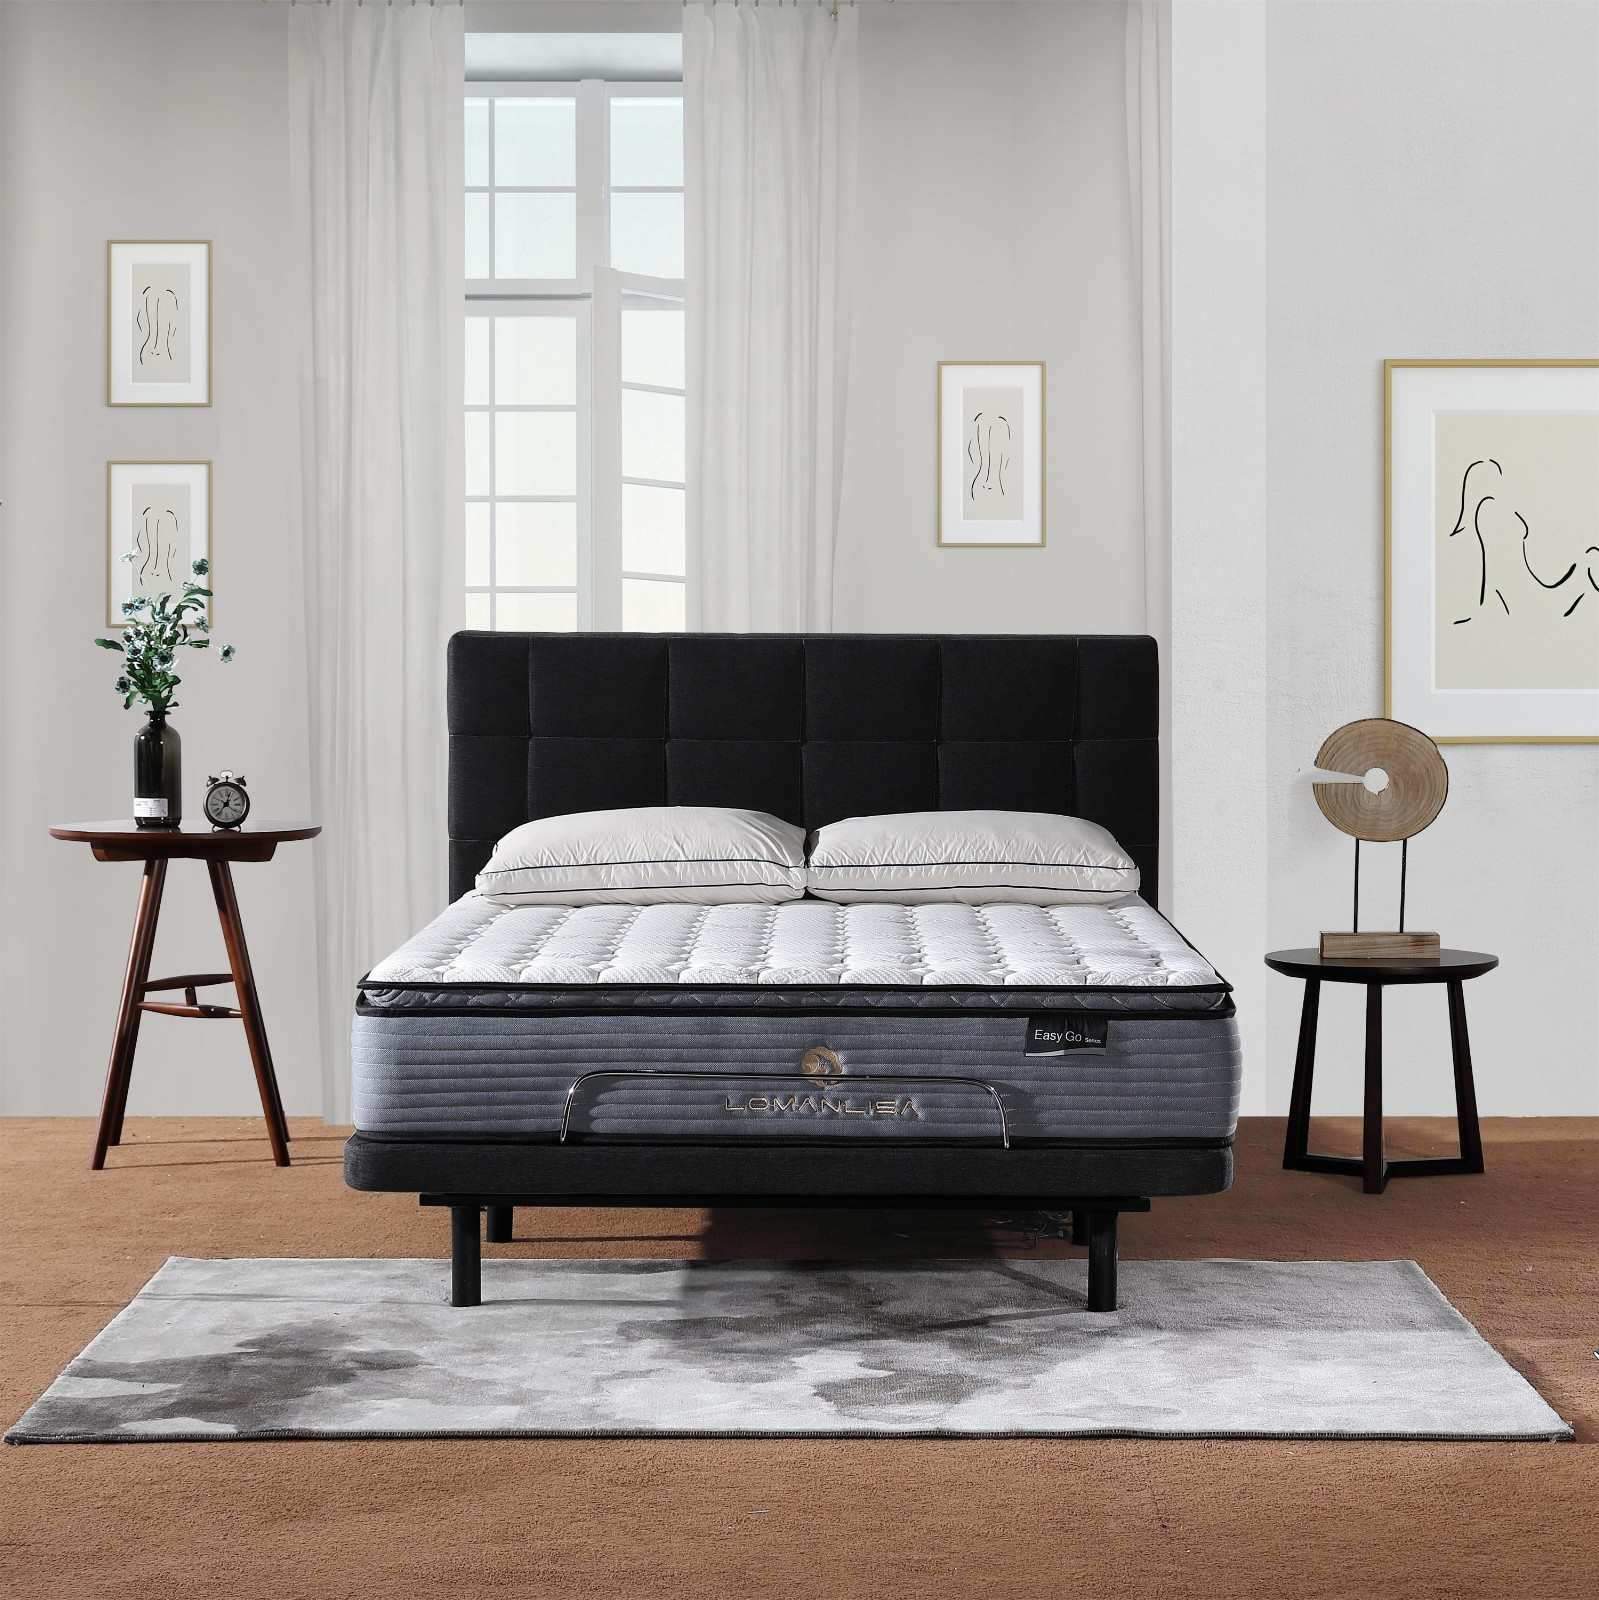 Pillow Top Design Electric Adjustable Bed with Quiet and Stable Motor in King Queen Size-10